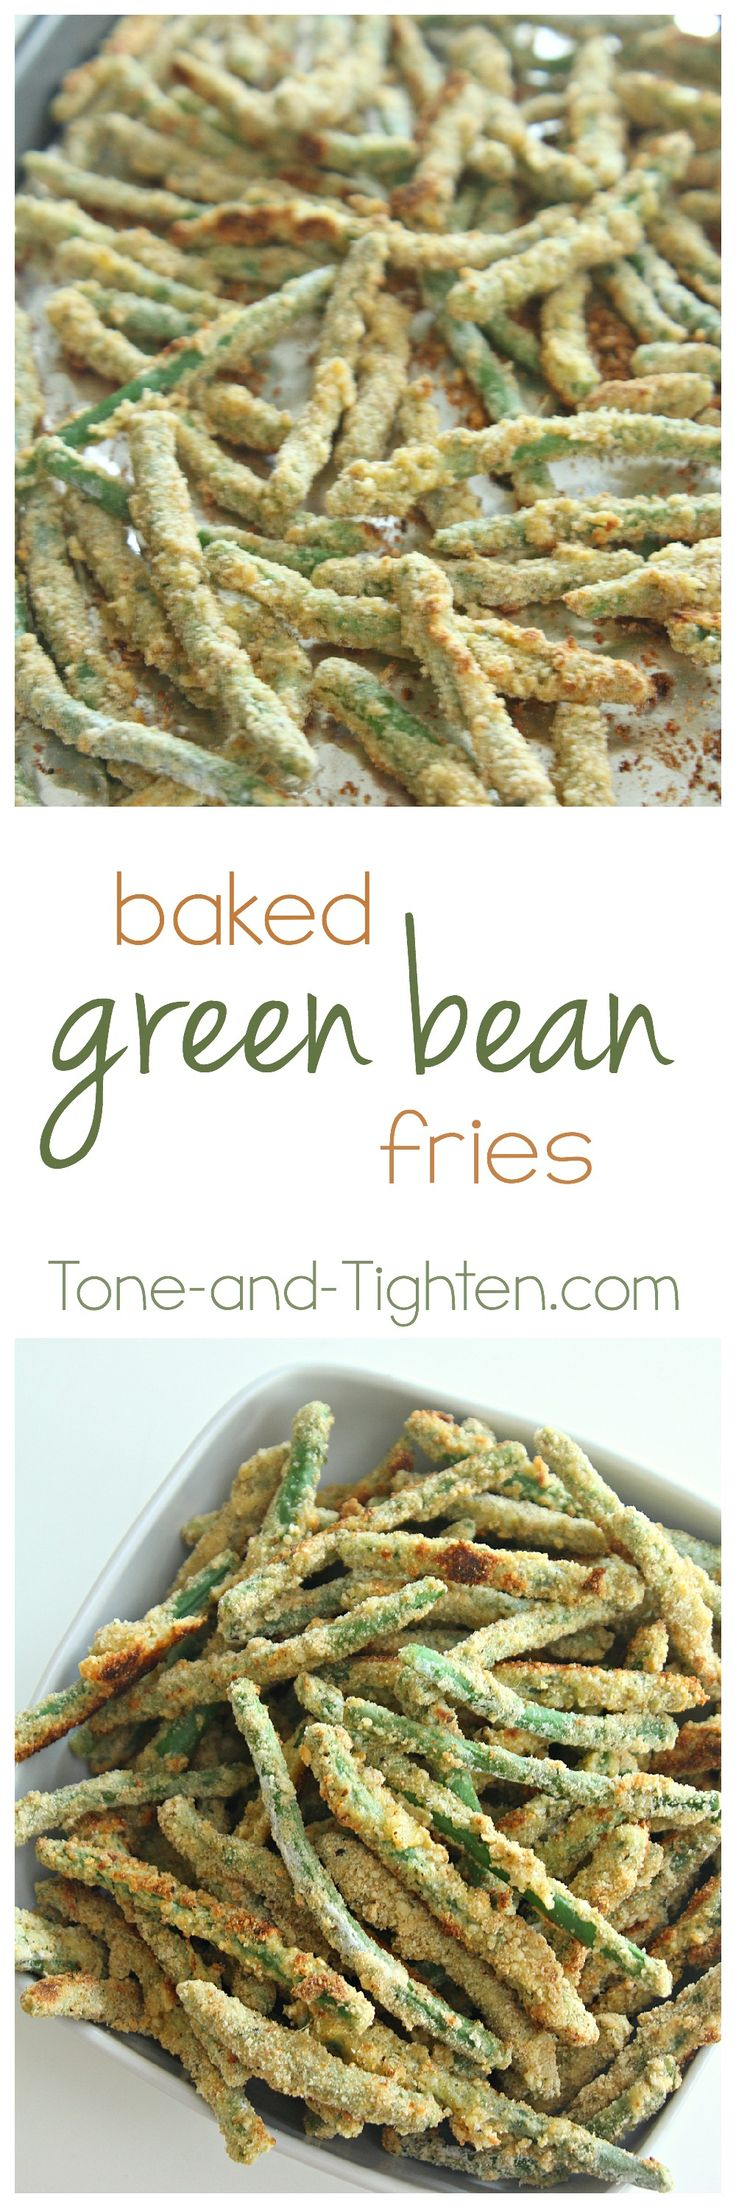 Oven Baked Green Bean Fries on Tone-and-Tighten